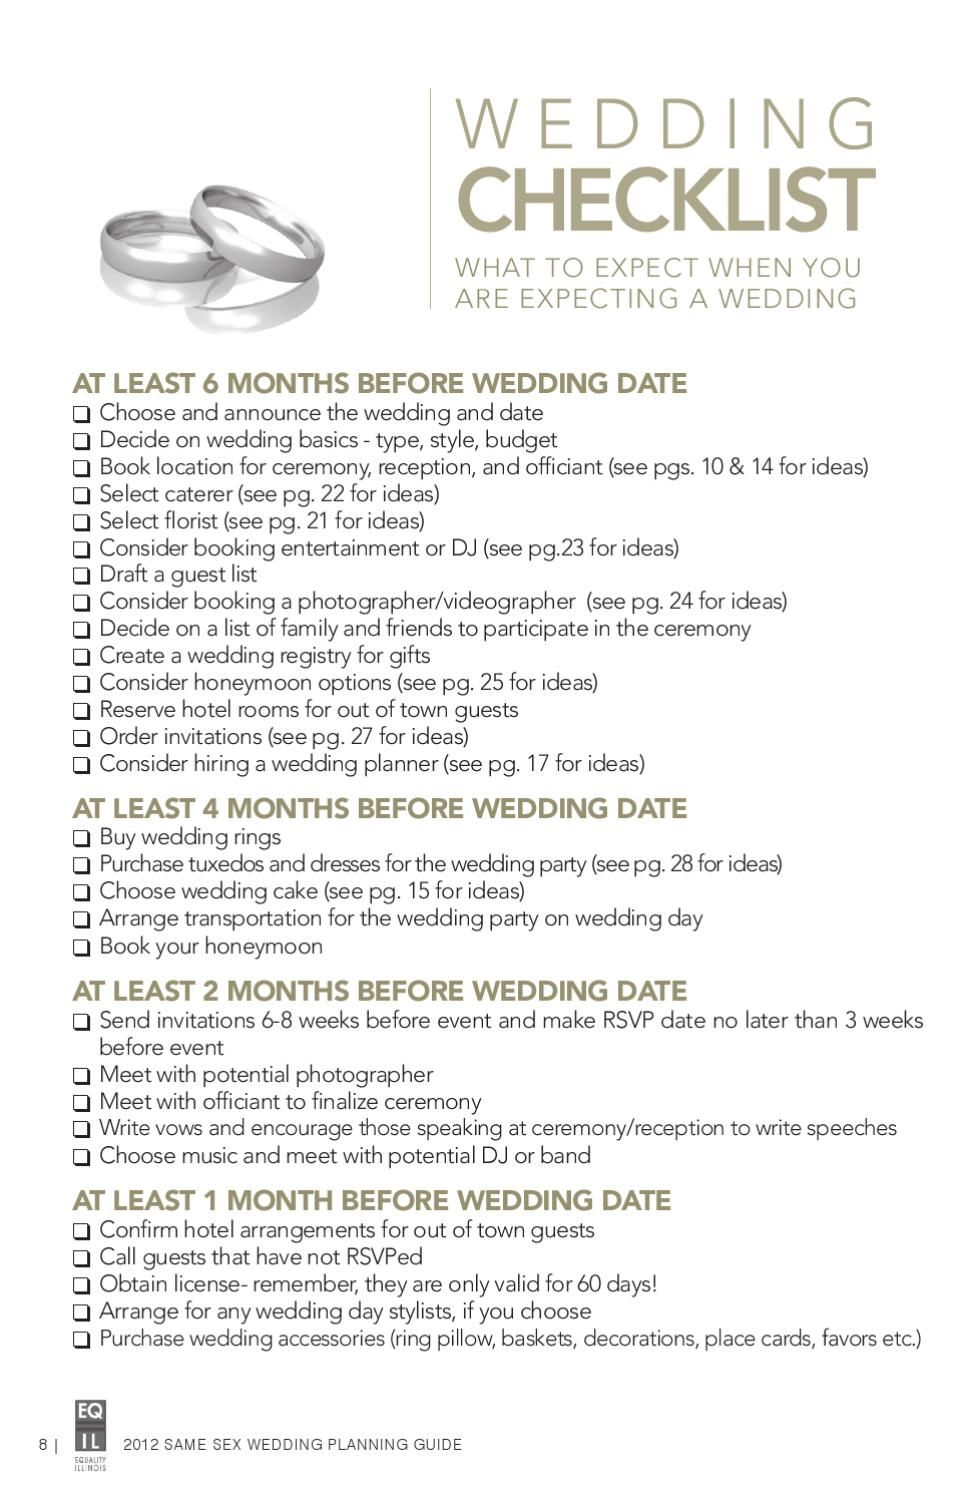 Same Sex Wedding Planning Guide